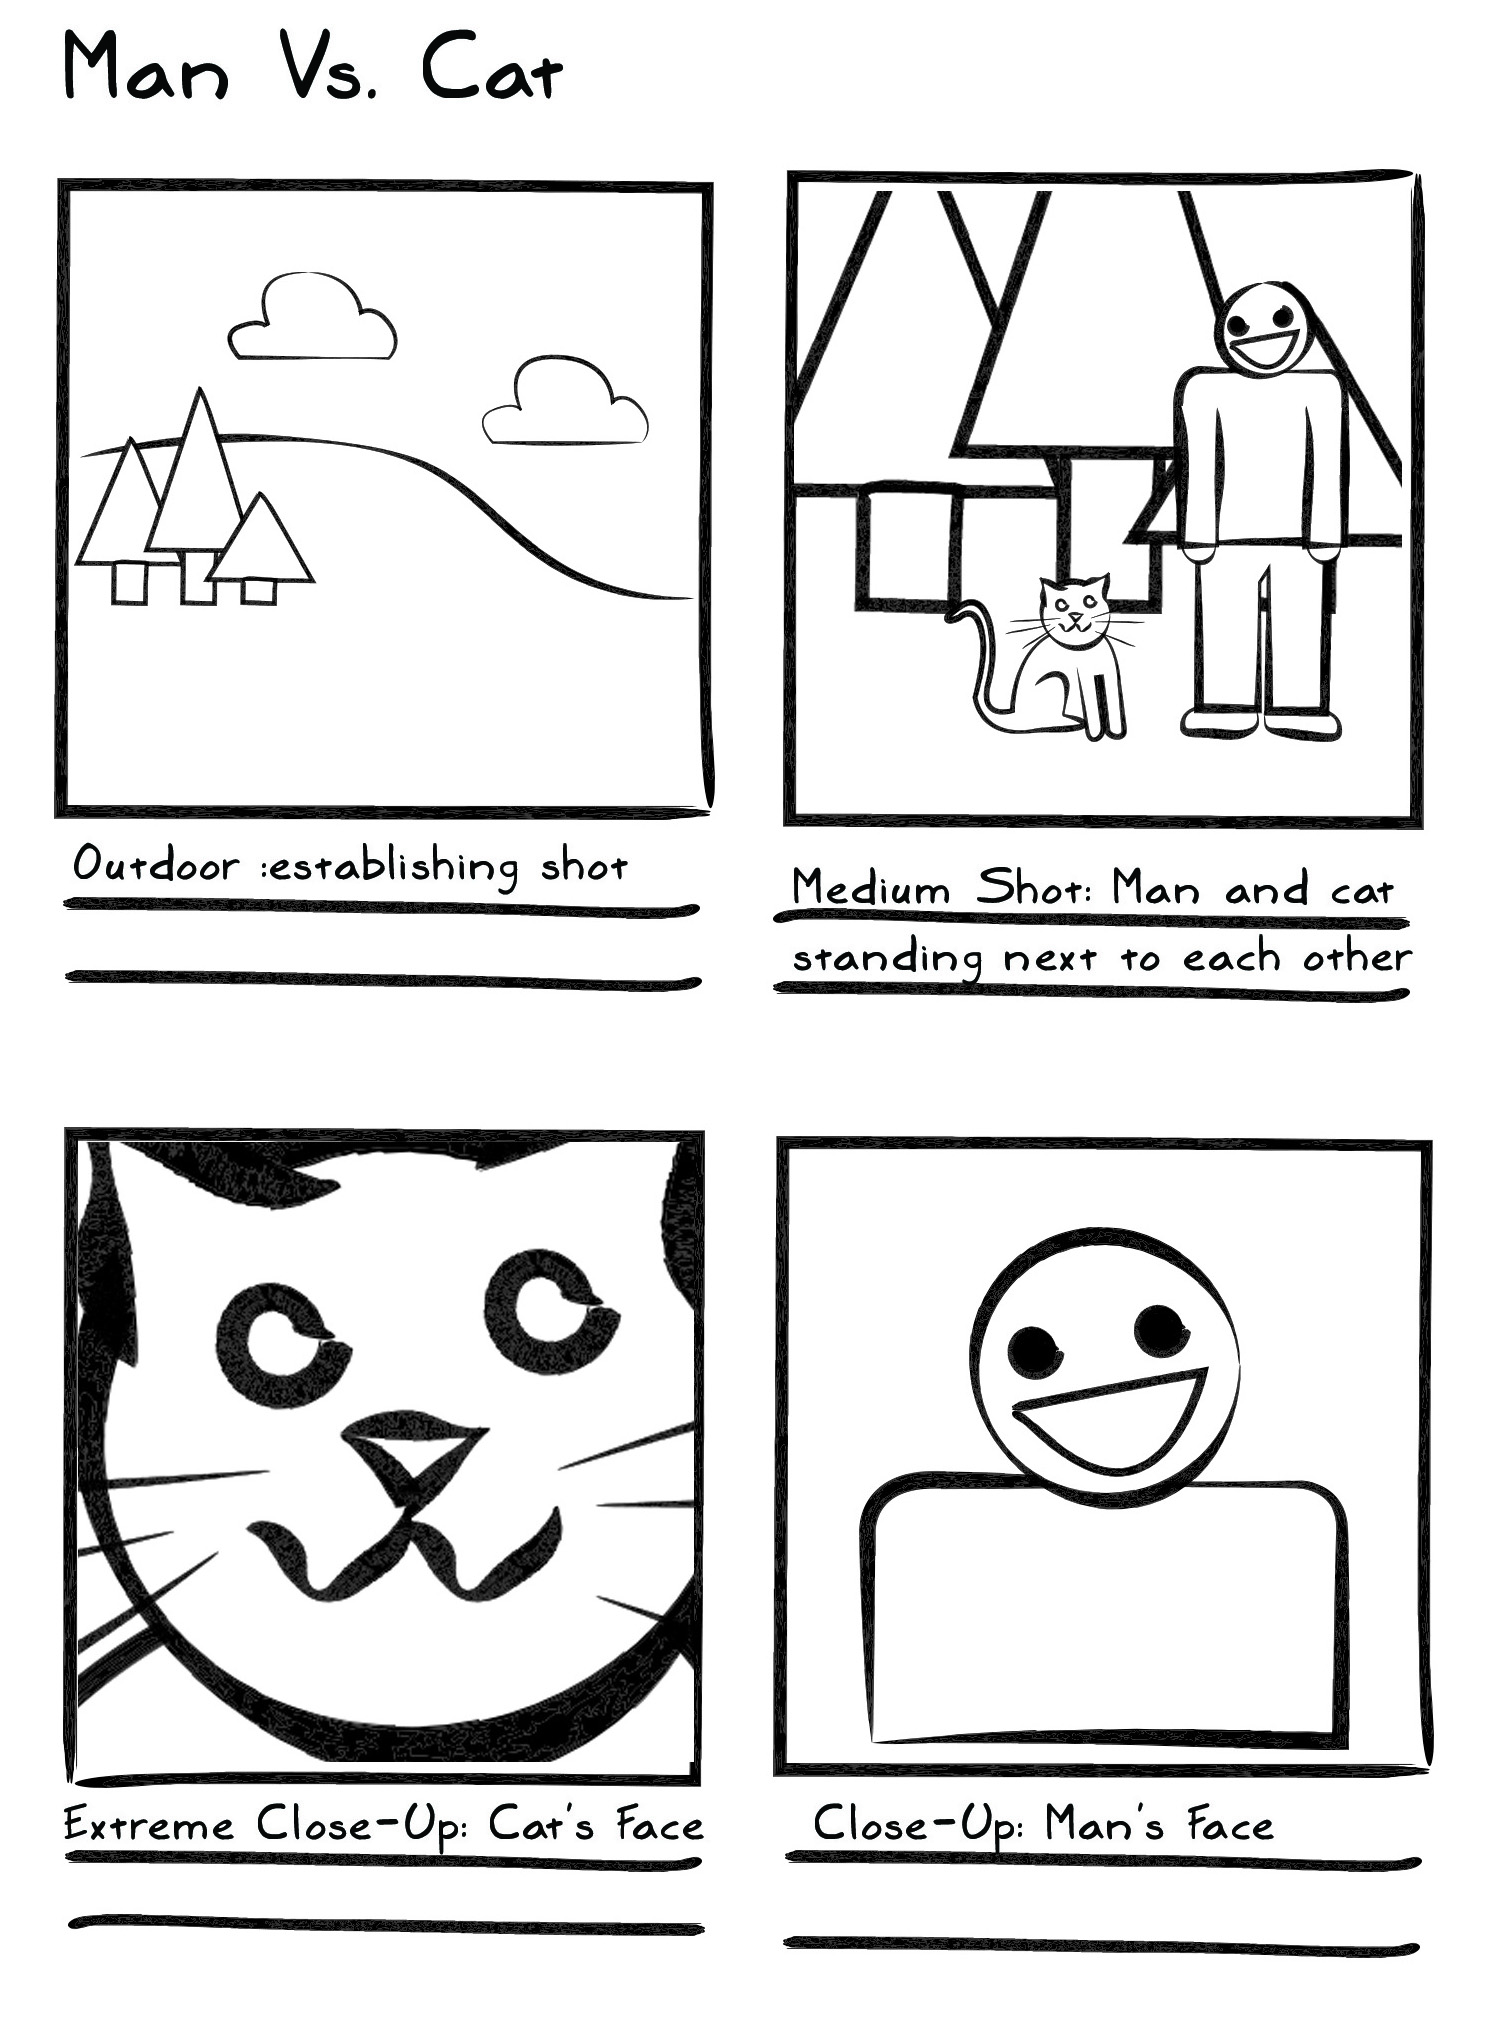 Man vs Cat Example Storyboard